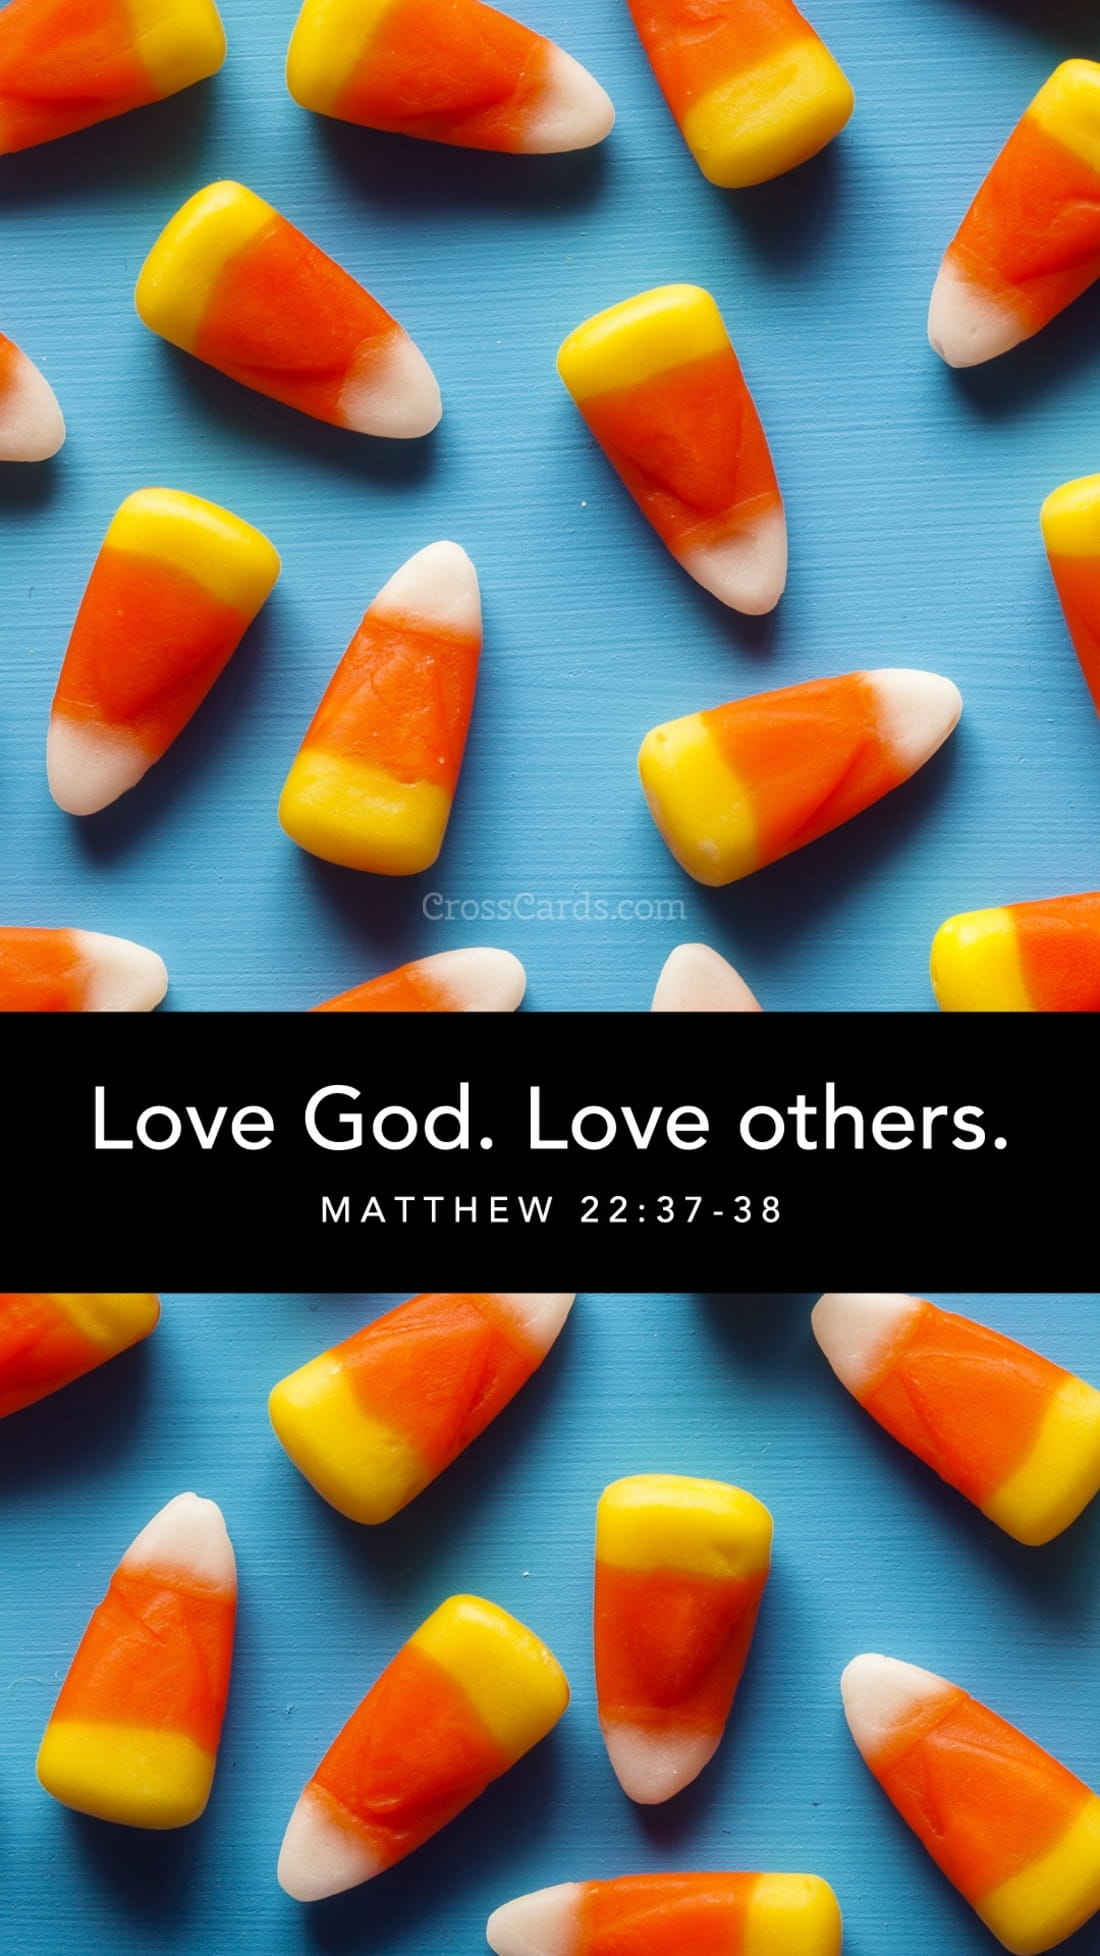 Love God. Love Others. mobile phone wallpaper